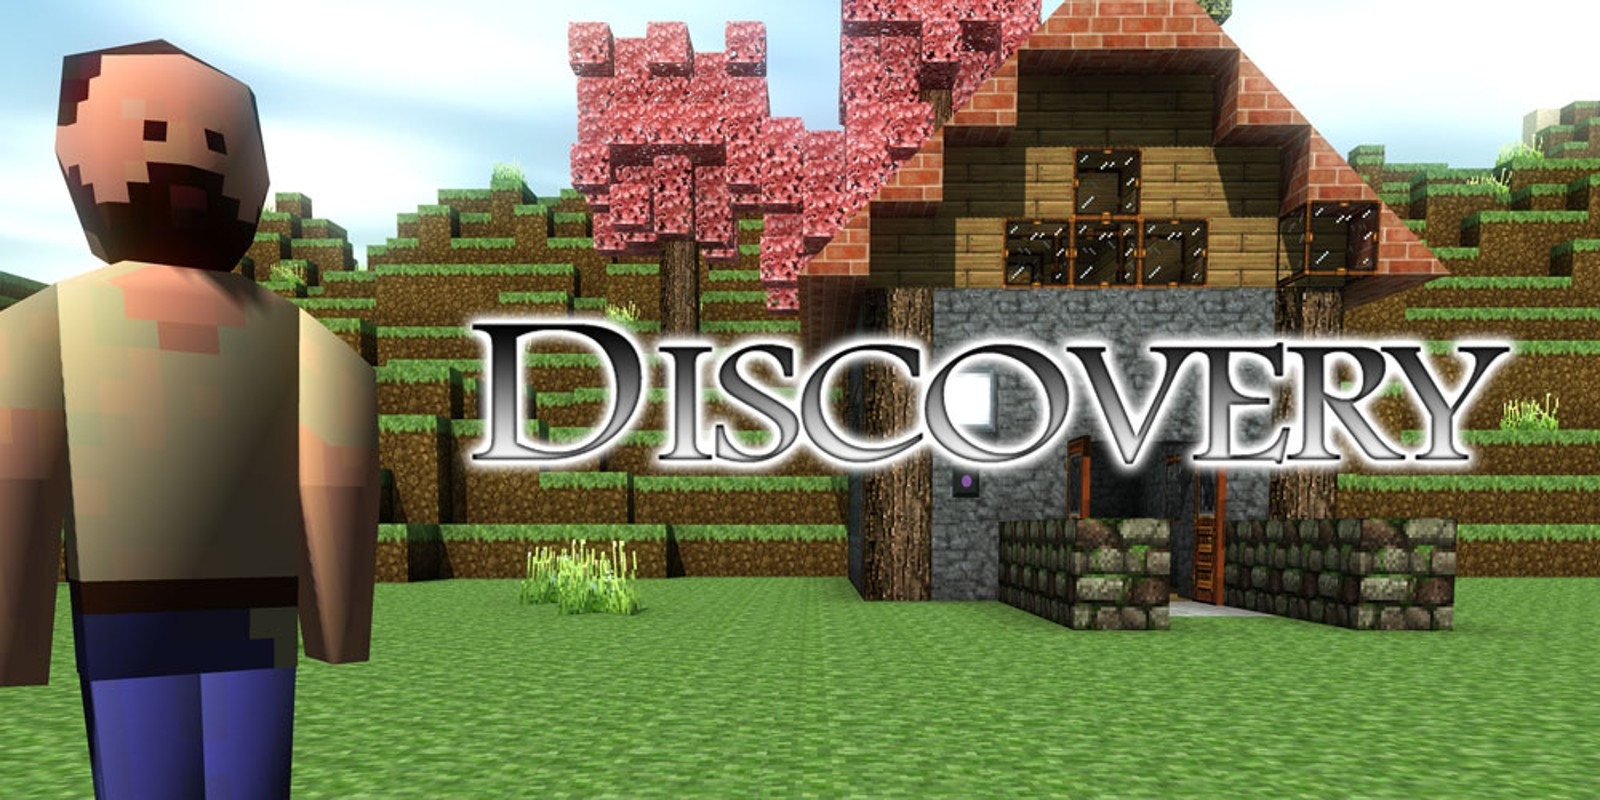 Discovery Wii U Download Software Games Nintendo